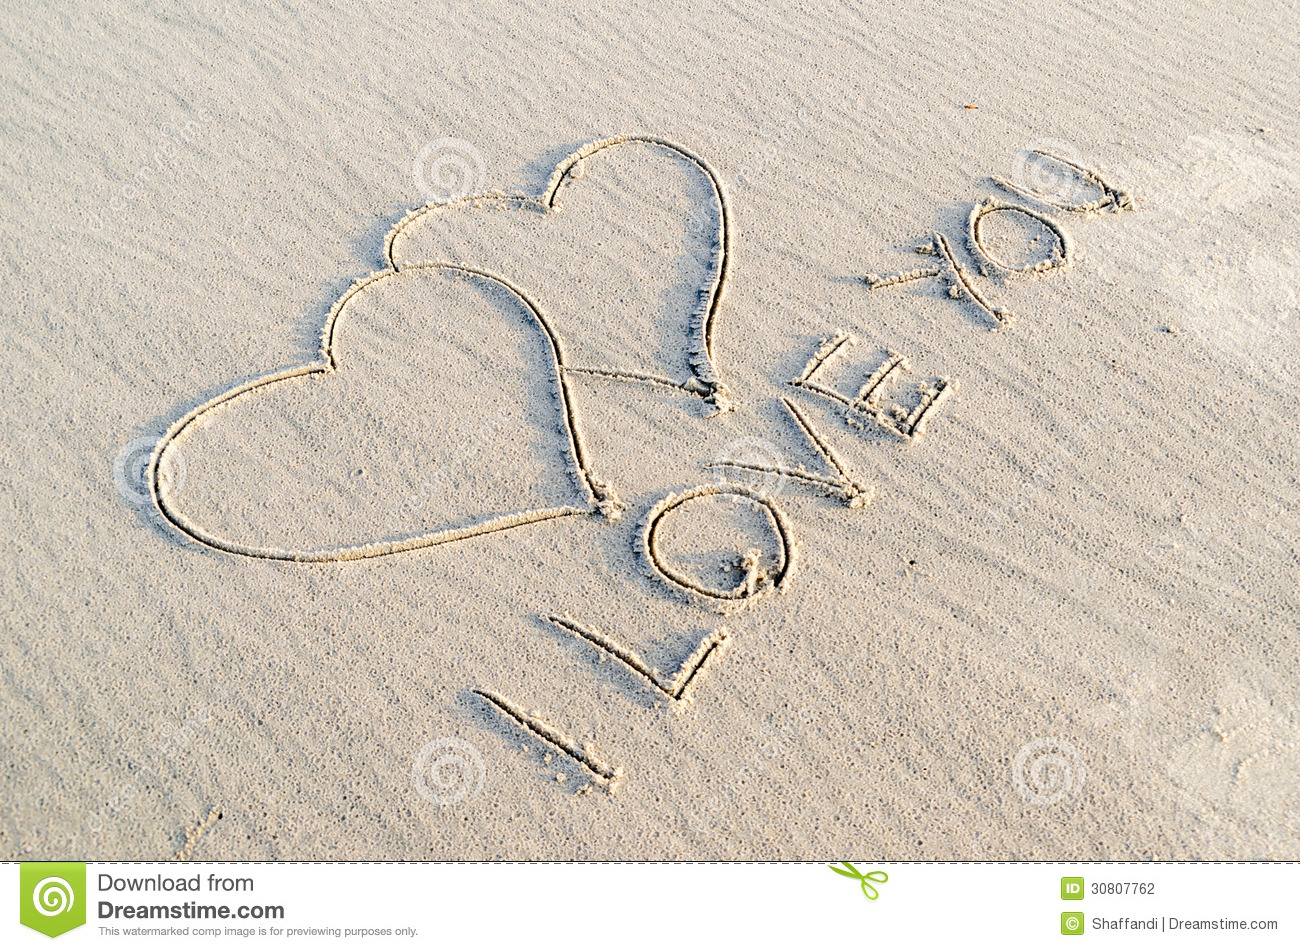 Heart Drawn On Sand Stock Photography - Image: 30807762